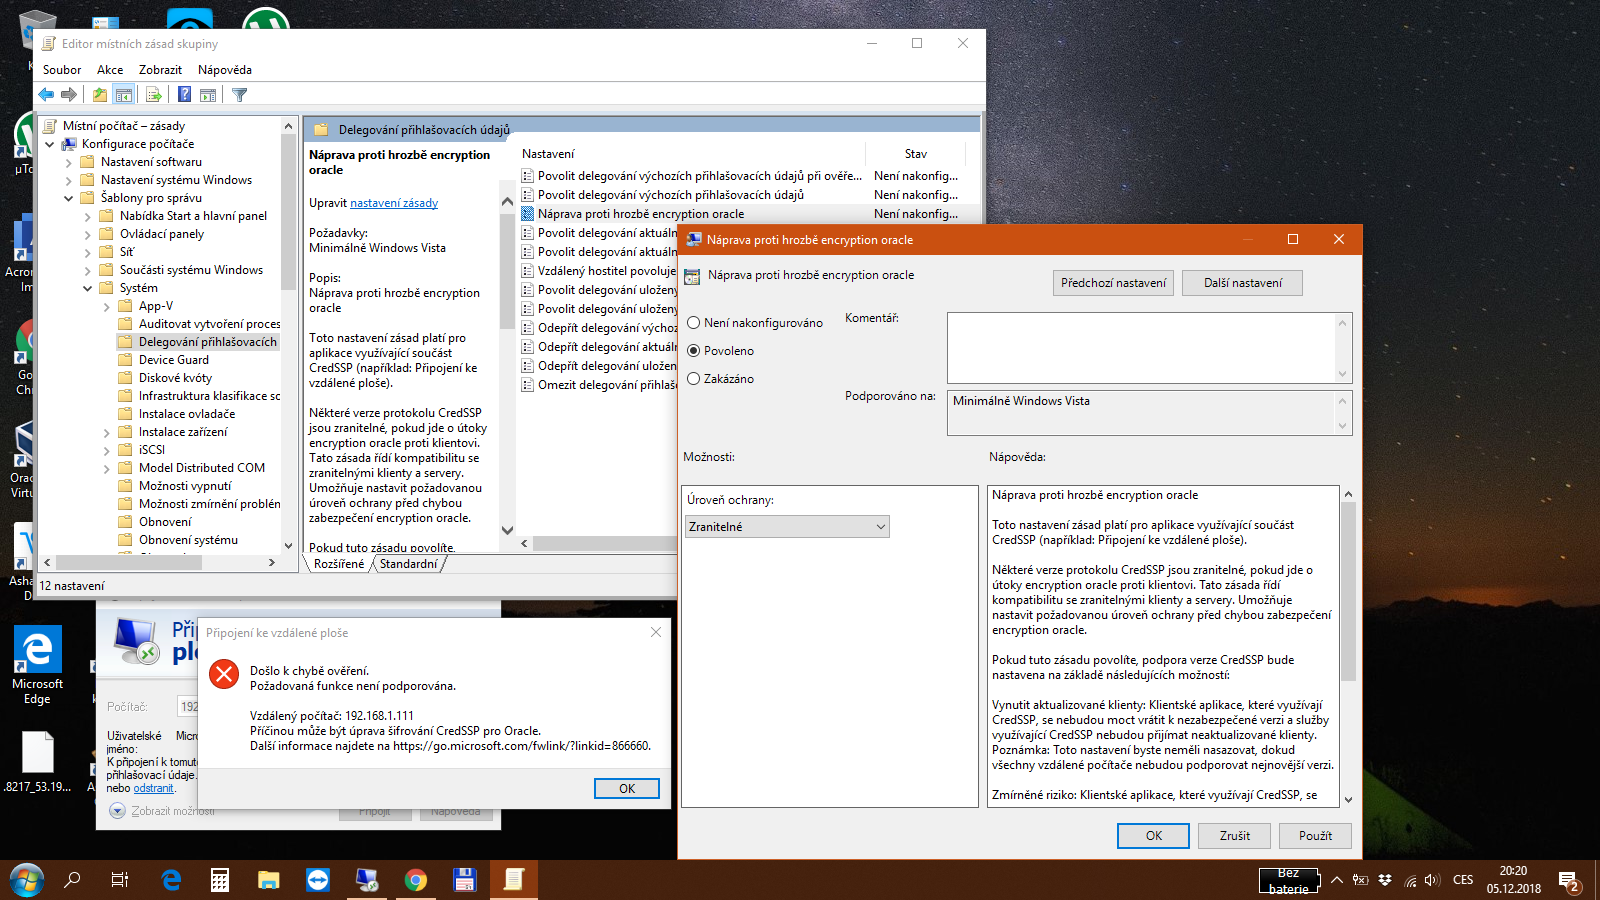 nastaveni-vzdalene-plochy-k-windows-7-z-windows-10.png